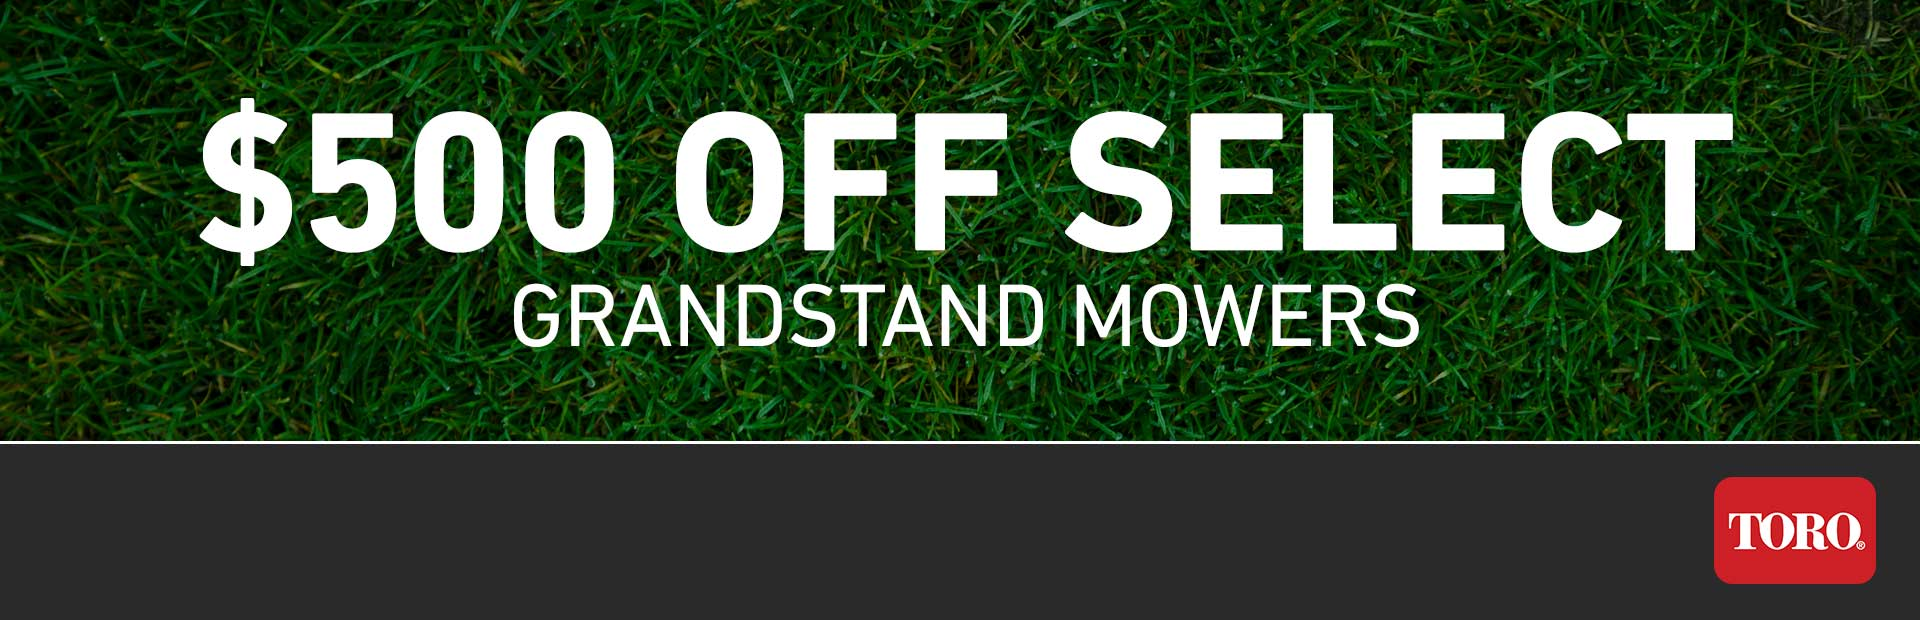 Toro: $500 Off Select Grandstand Mowers